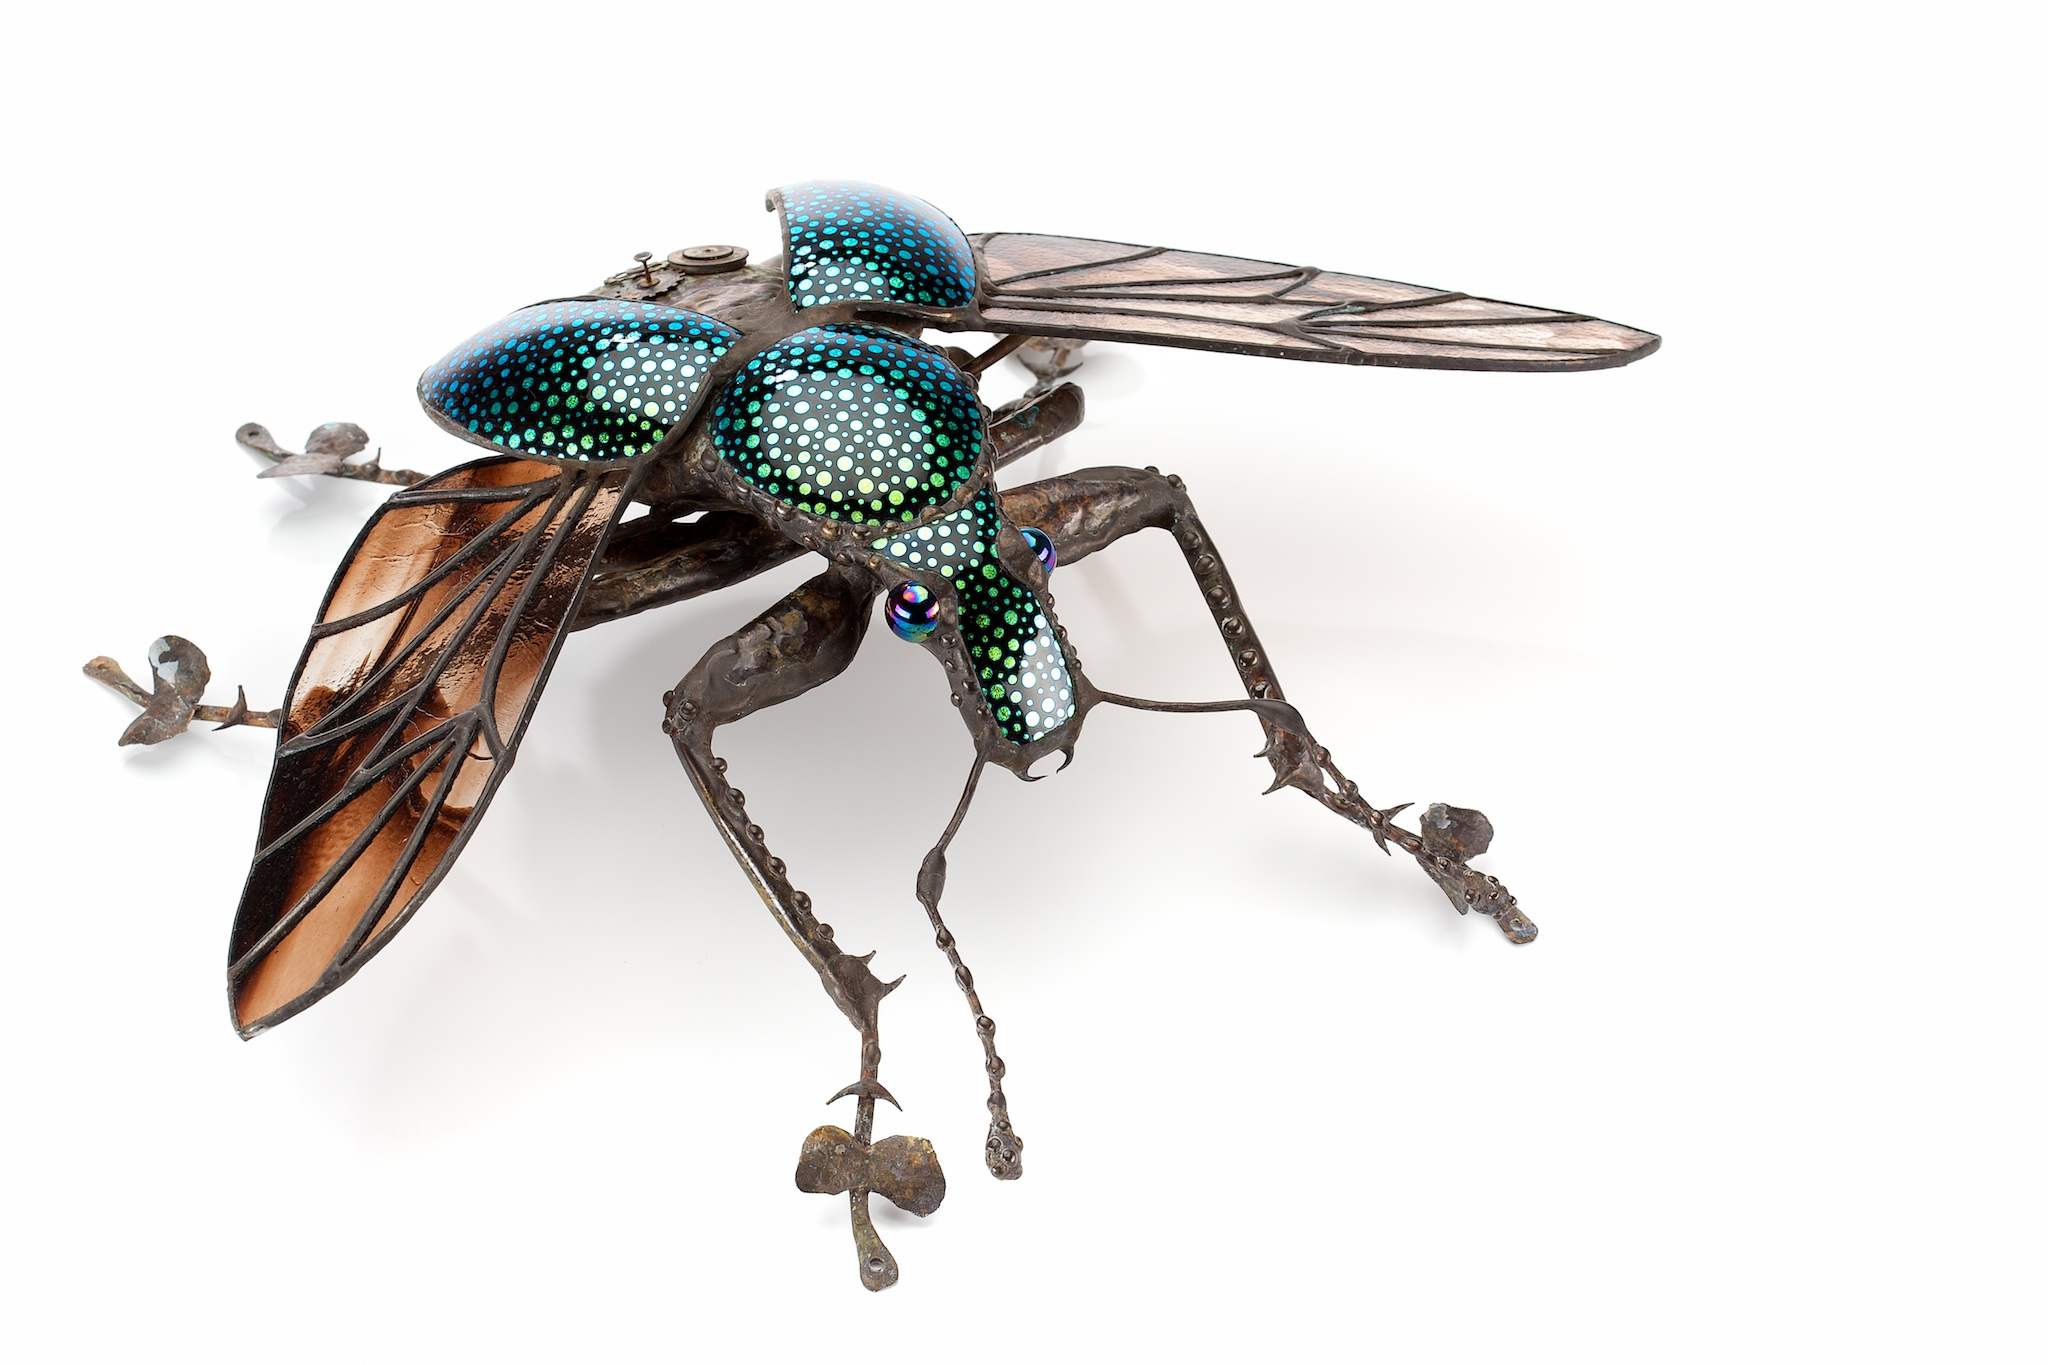 Sean Goddard Insects One Of Salt Spring Islands Famous